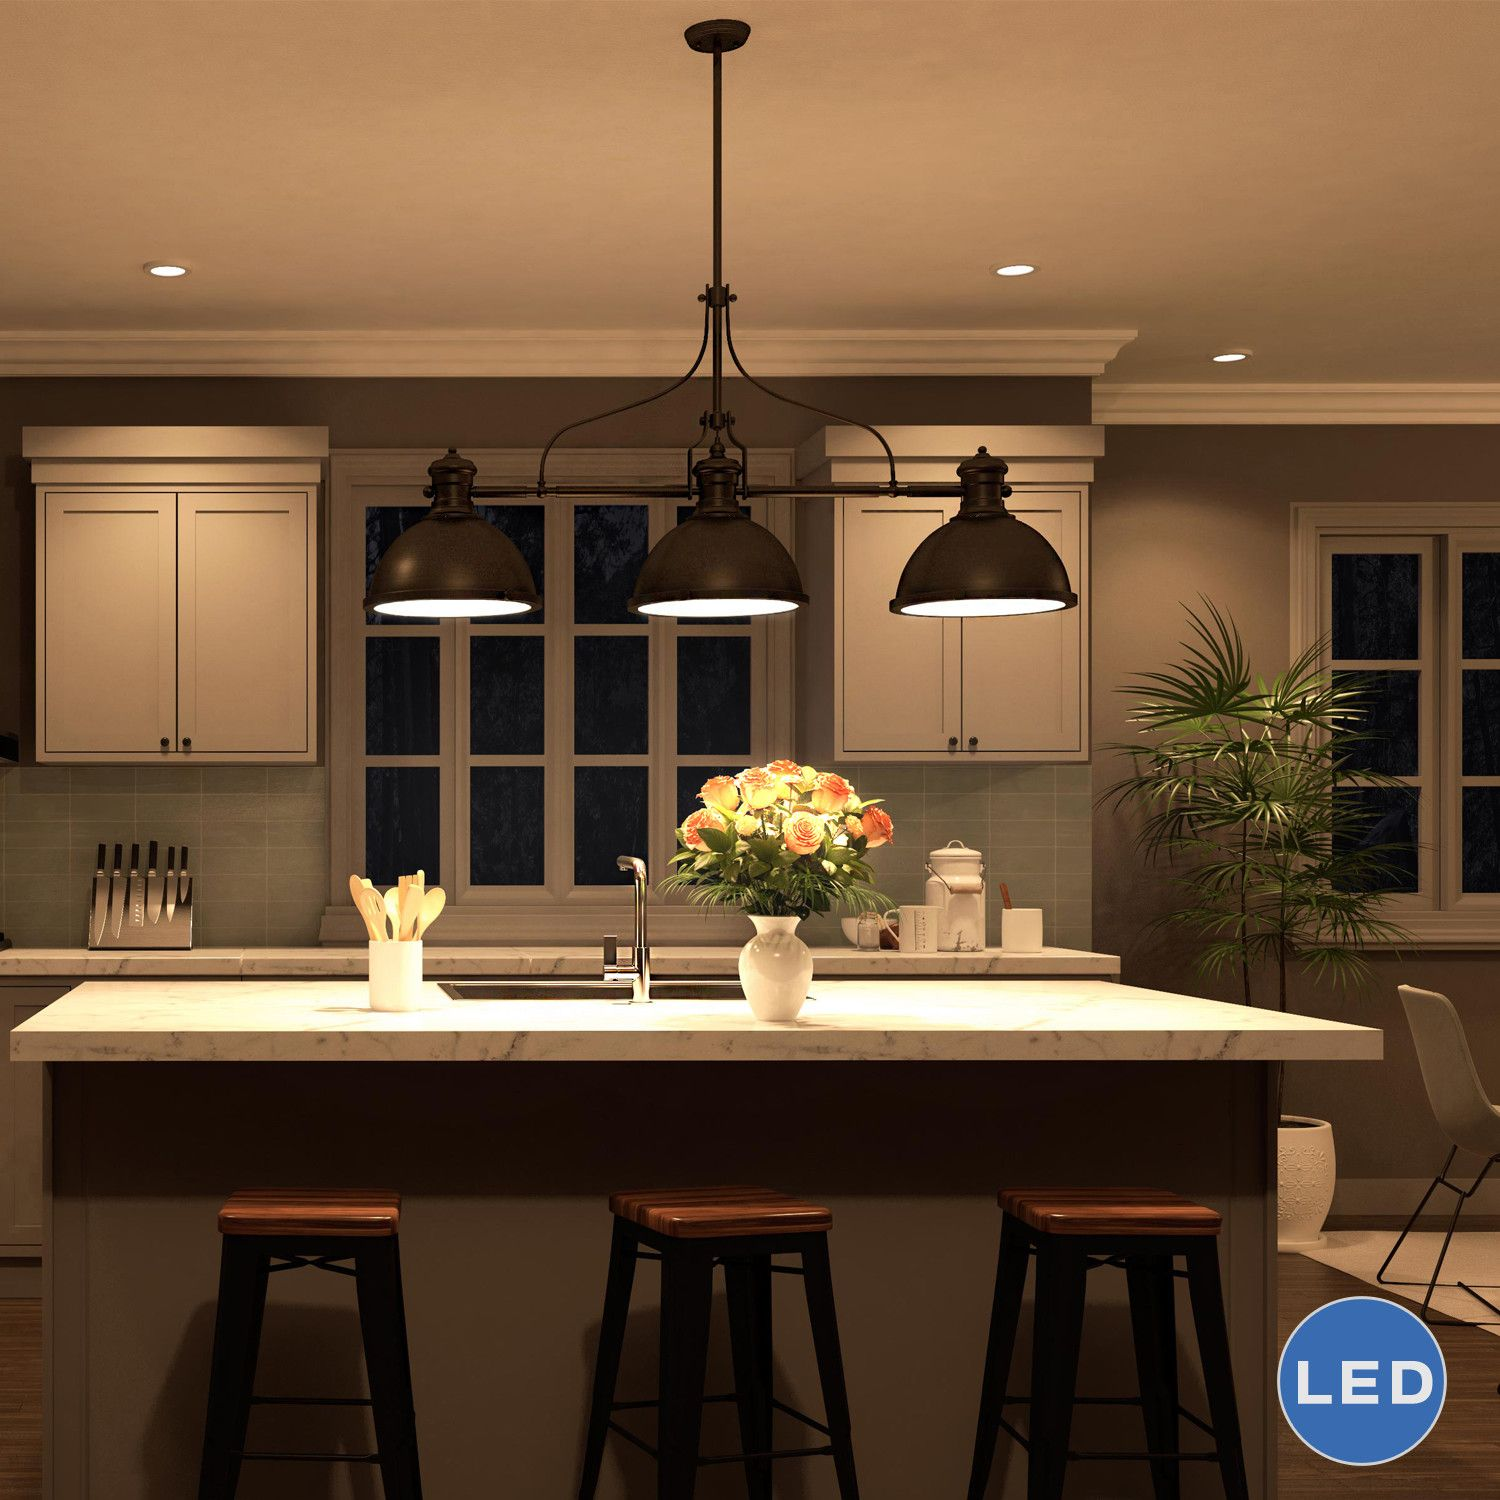 Hanging Kitchen Lights Over Island: The Room May Receive Welcoming Glow Thanks To Big Pendant